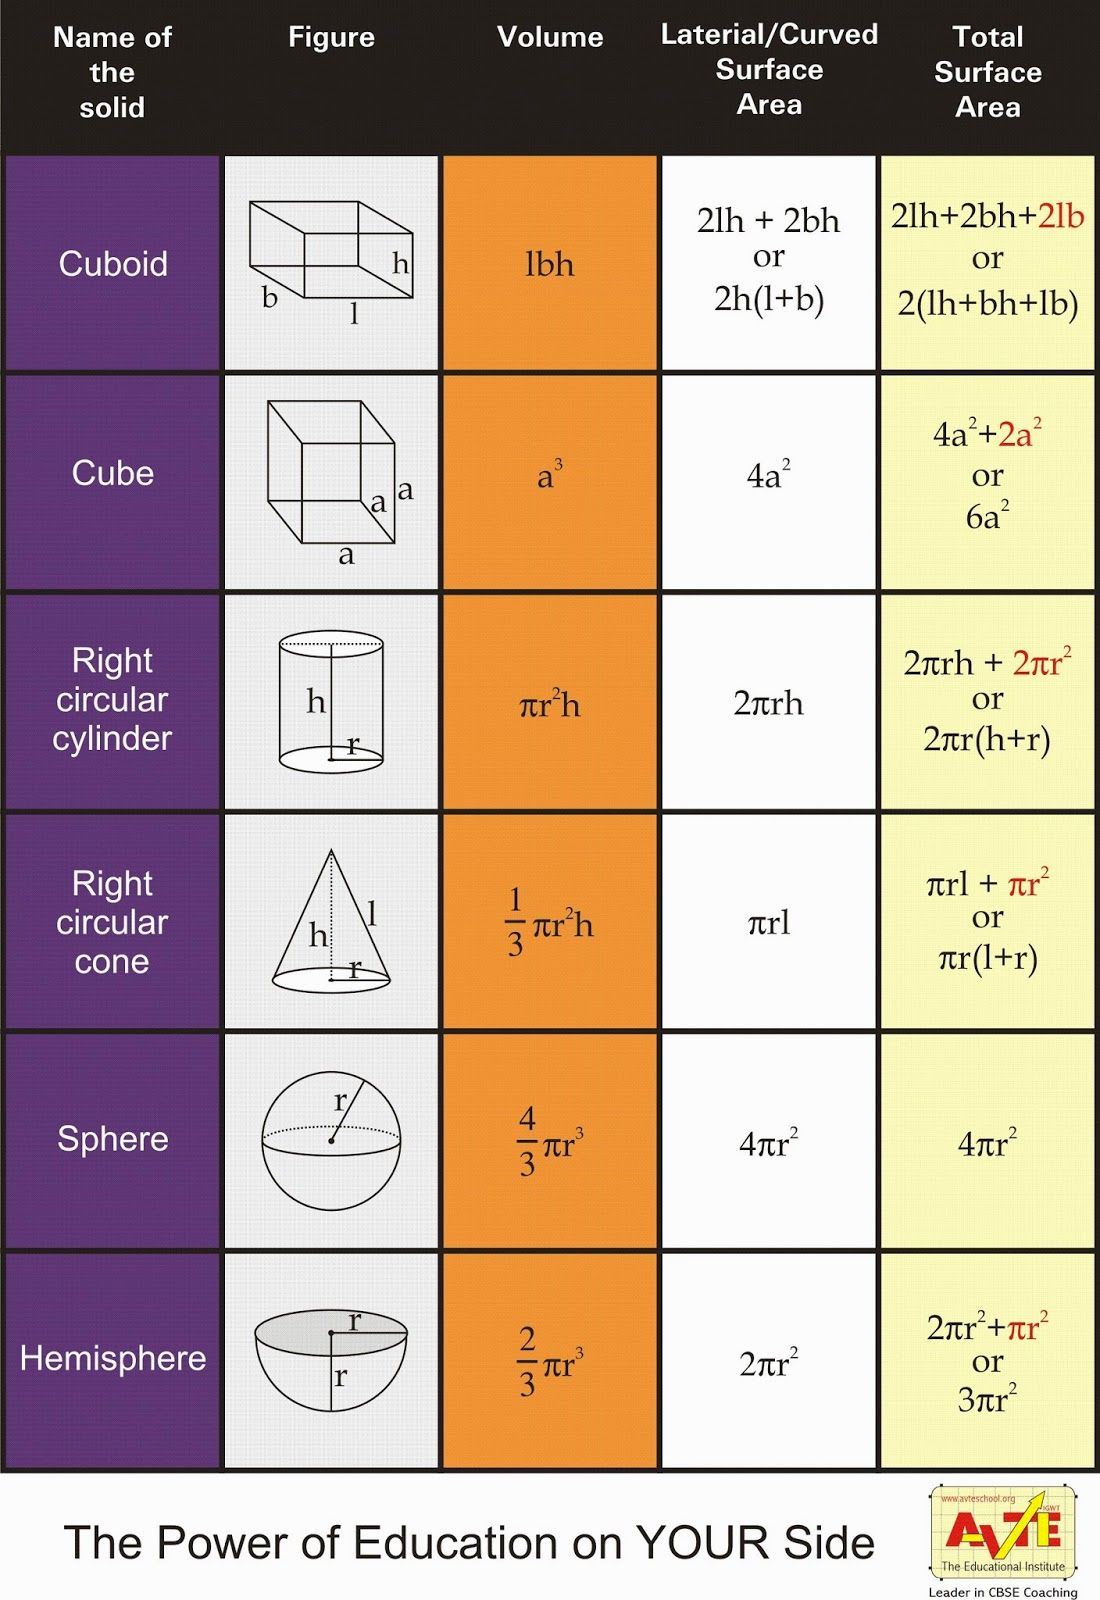 Maths4all Formulas Of Volume And Surface Area Of Solid Figures For Class Vi Vii Viii Ix X Xi